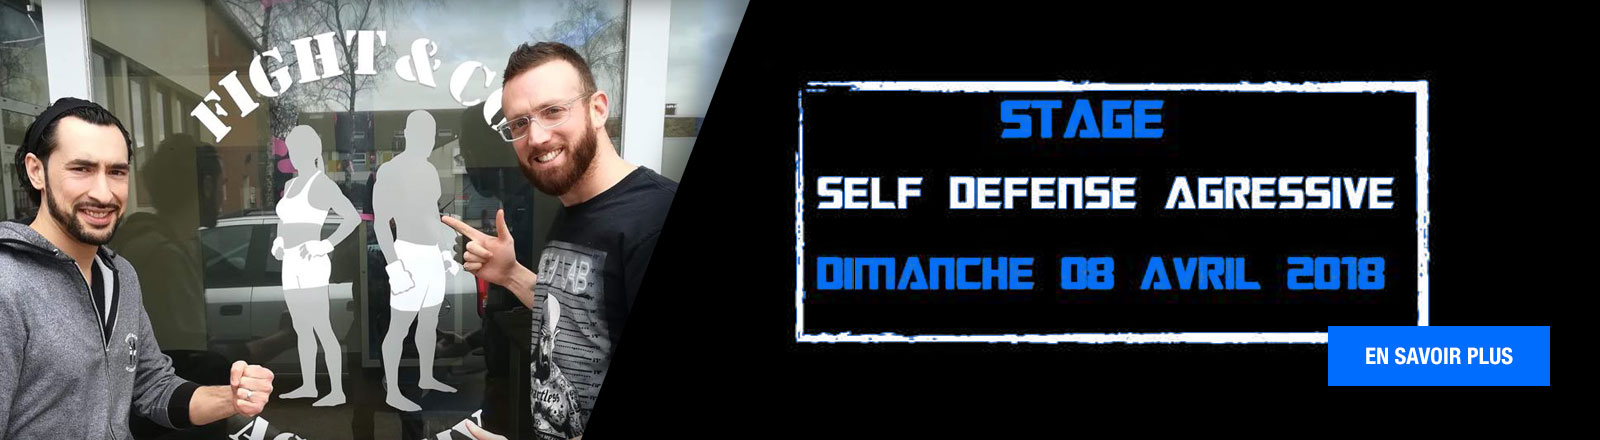 Bannieres-Stage-SelfDefence